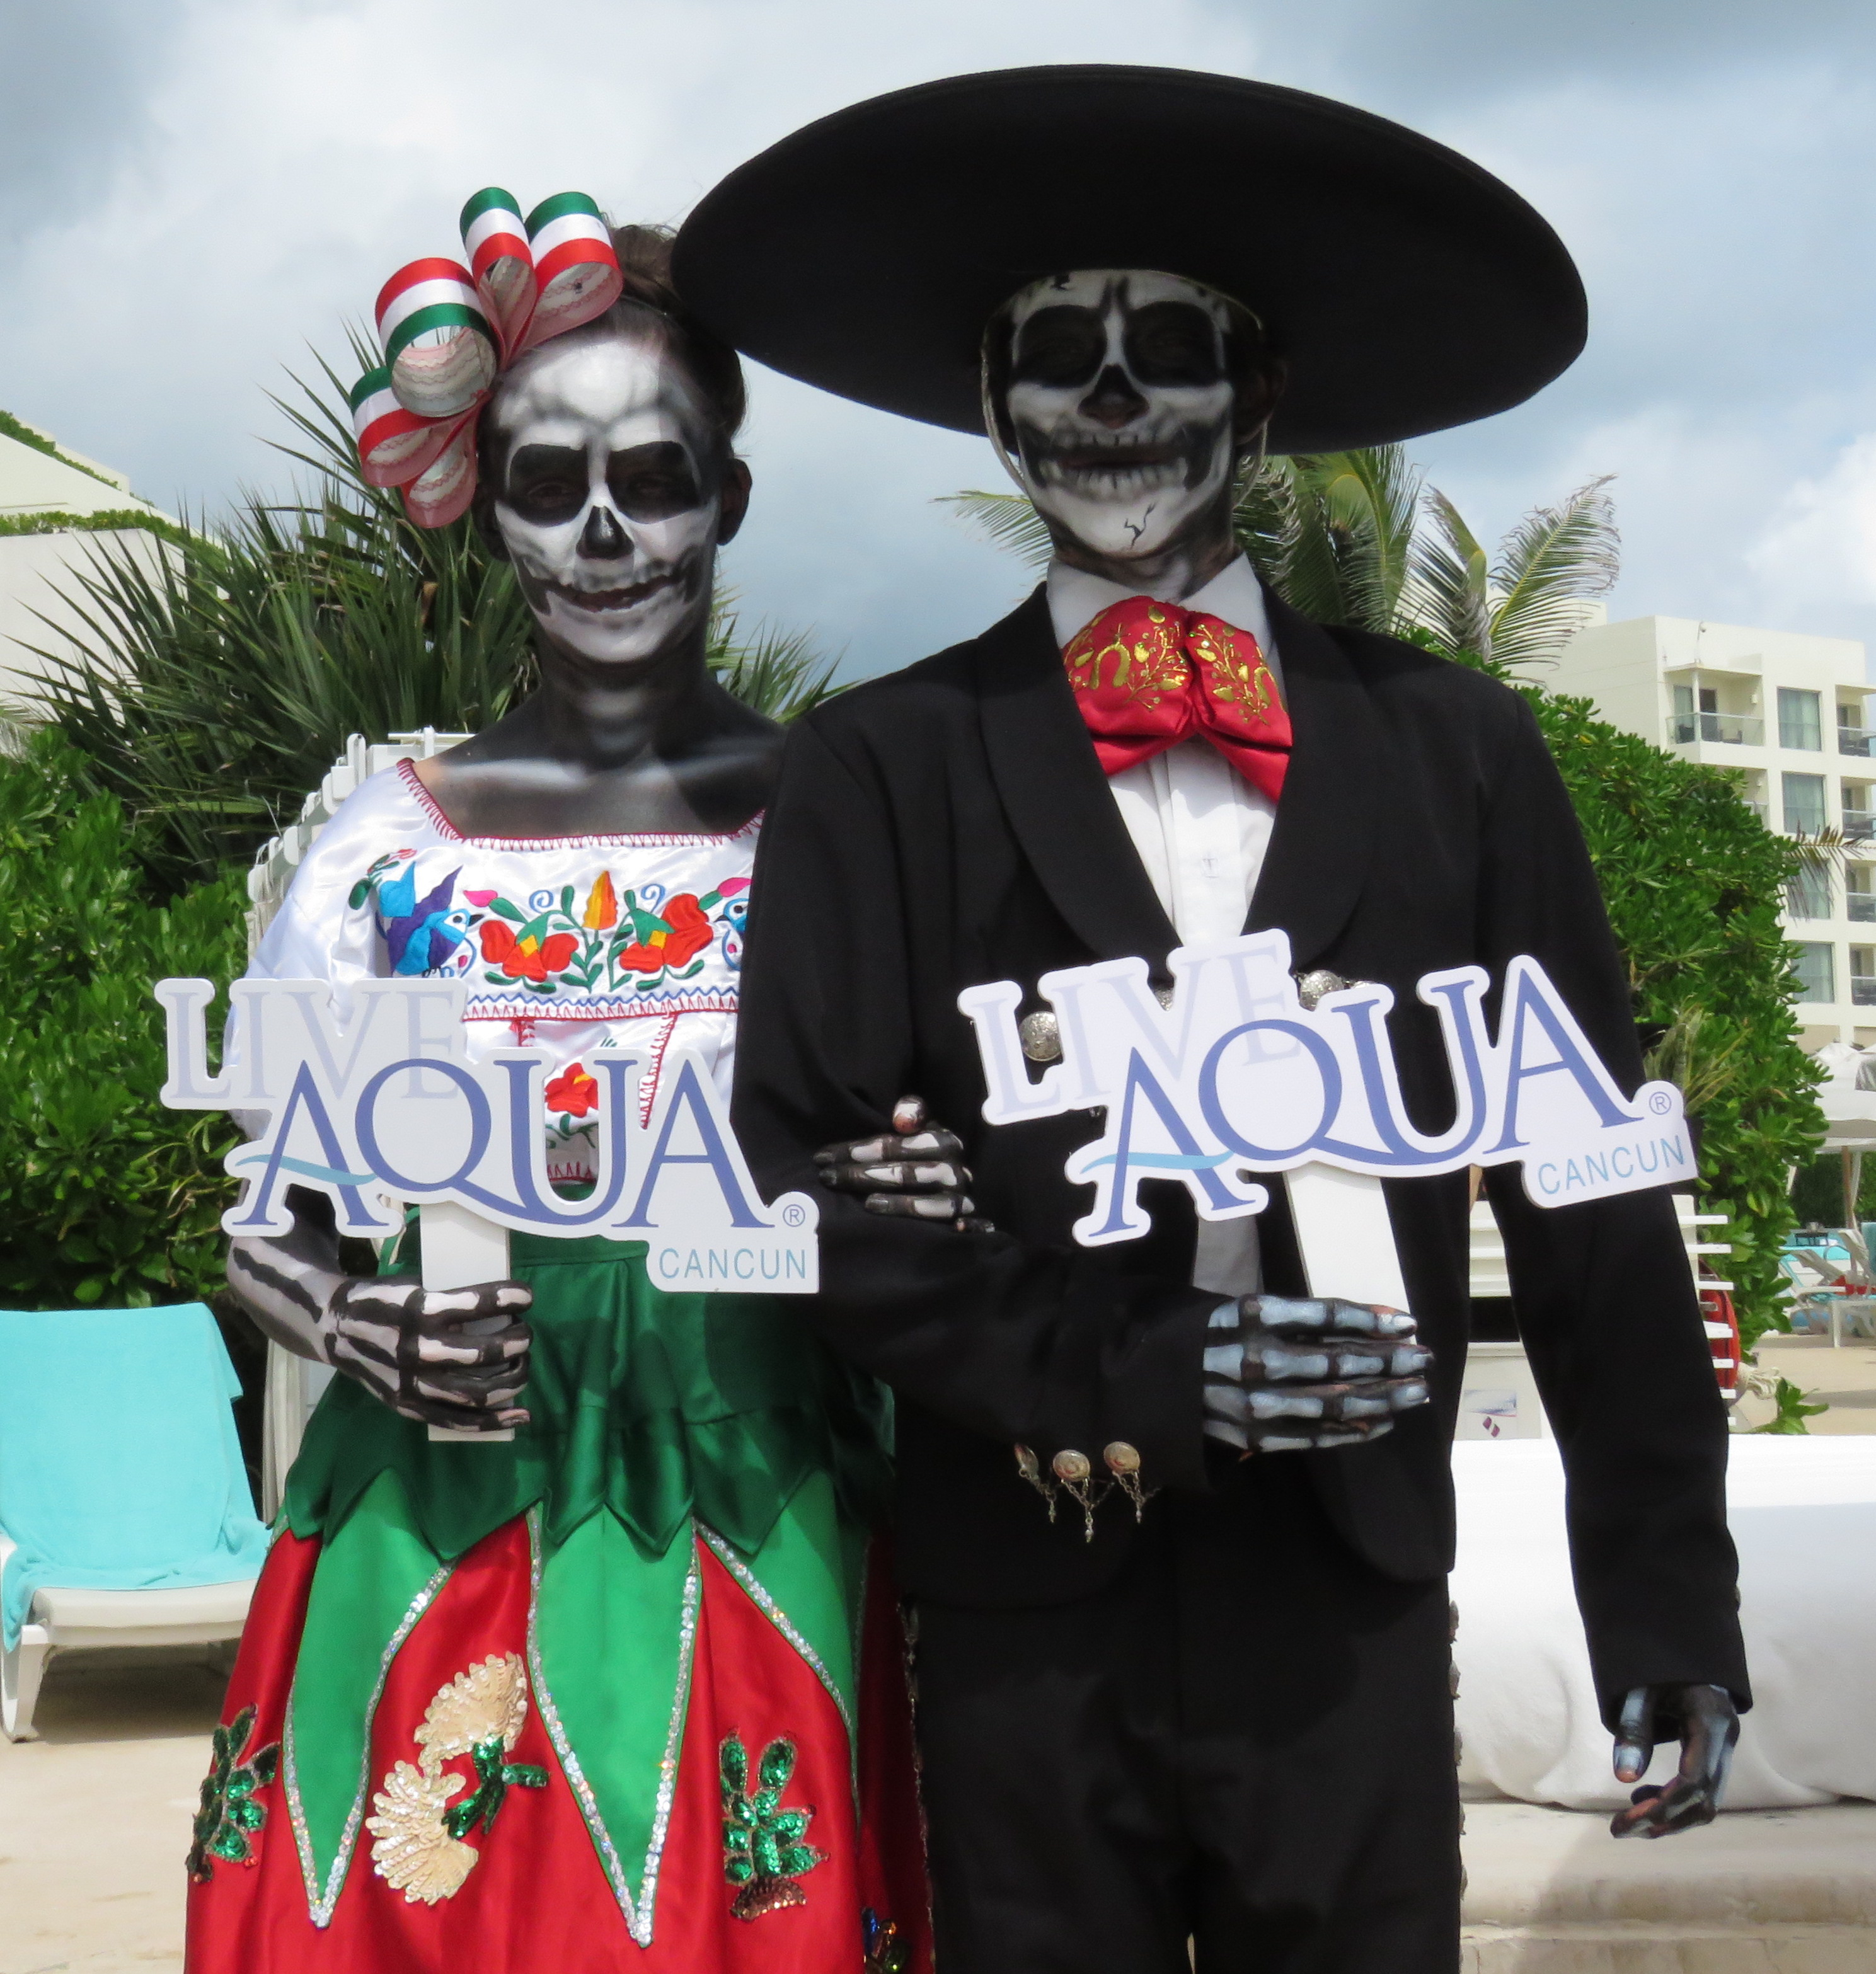 Day of the Dead festivities at Live Aqua Resort Cancun.